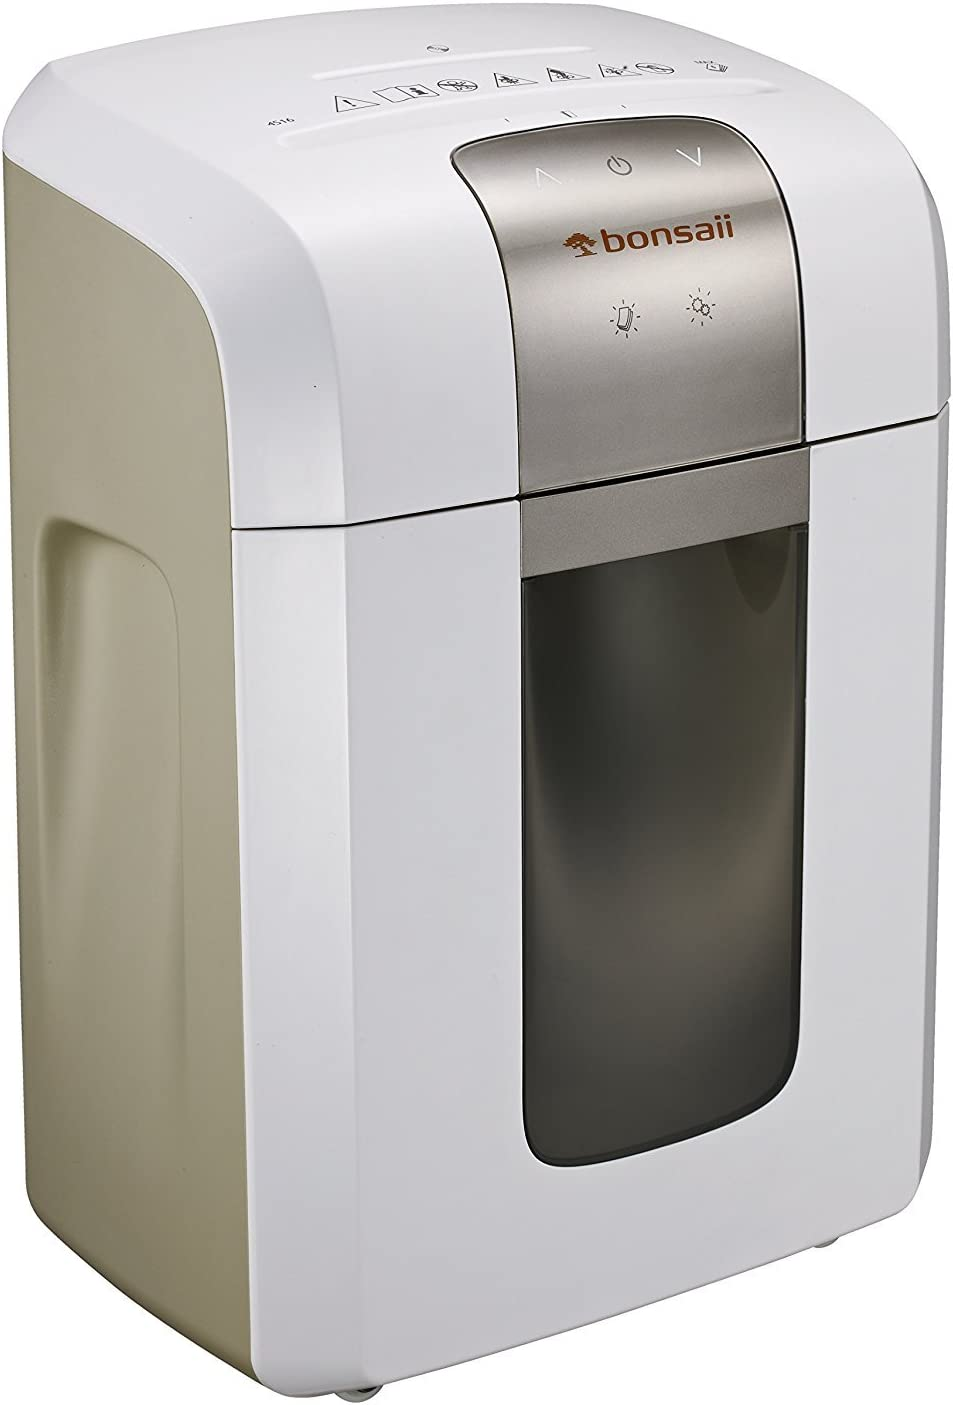 Bonsaii EverShred Pro 4S16 6-Sheet Micro-Cut Paper/CD/Credit Card Shredder,60 Mintues Continuous Running with 4 Easy Move Casters,High Security P-5,White